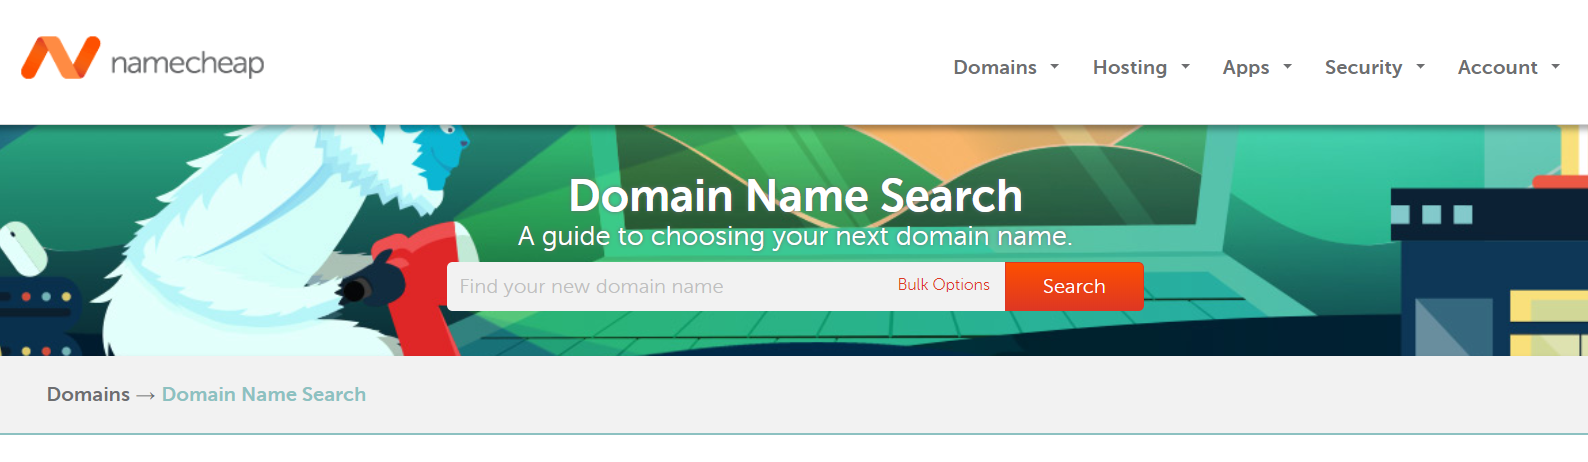 Domain name search in Namecheap | HollyPryce.com